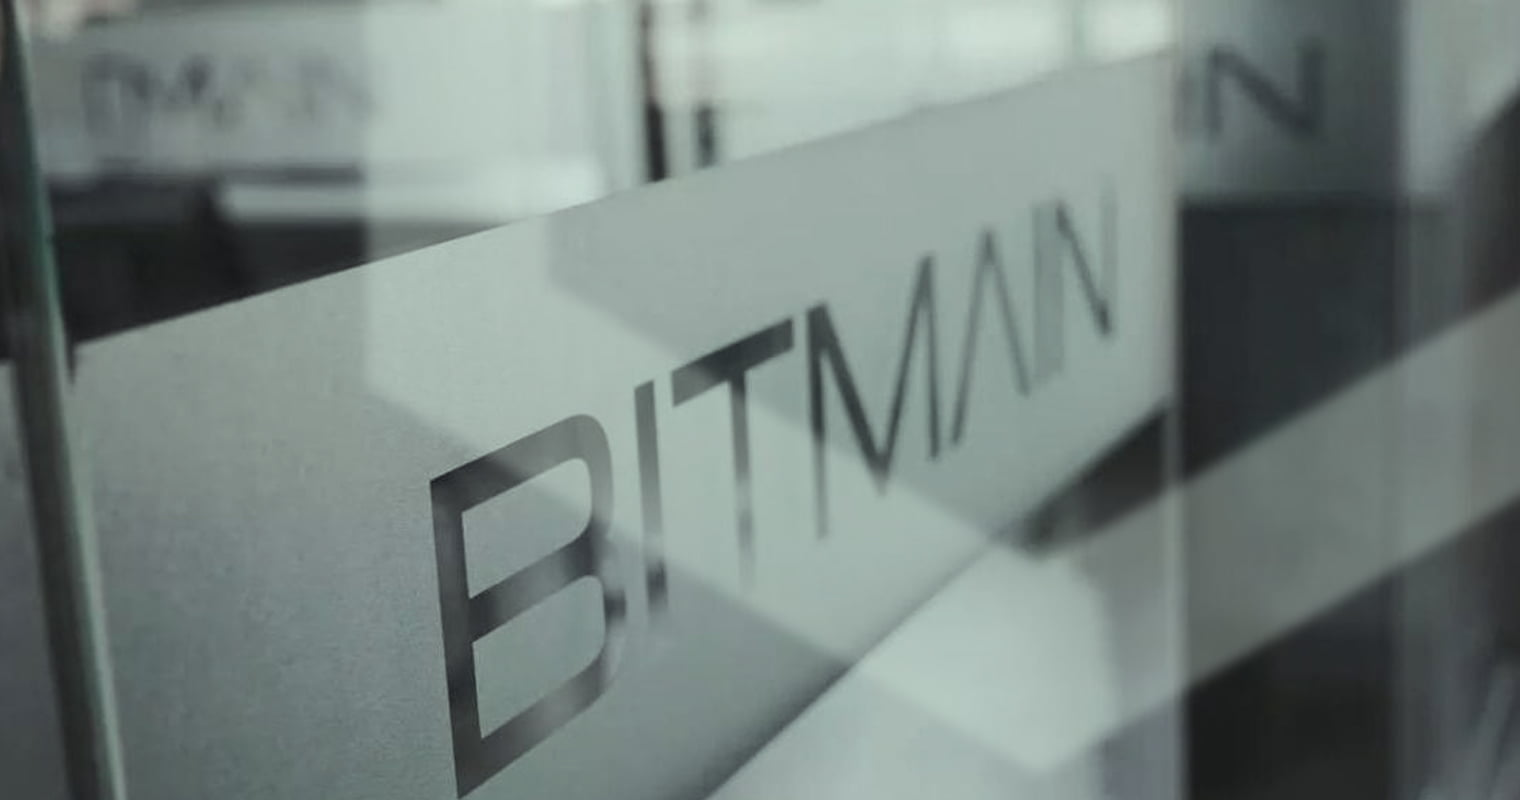 bitmain crypto bitcoin